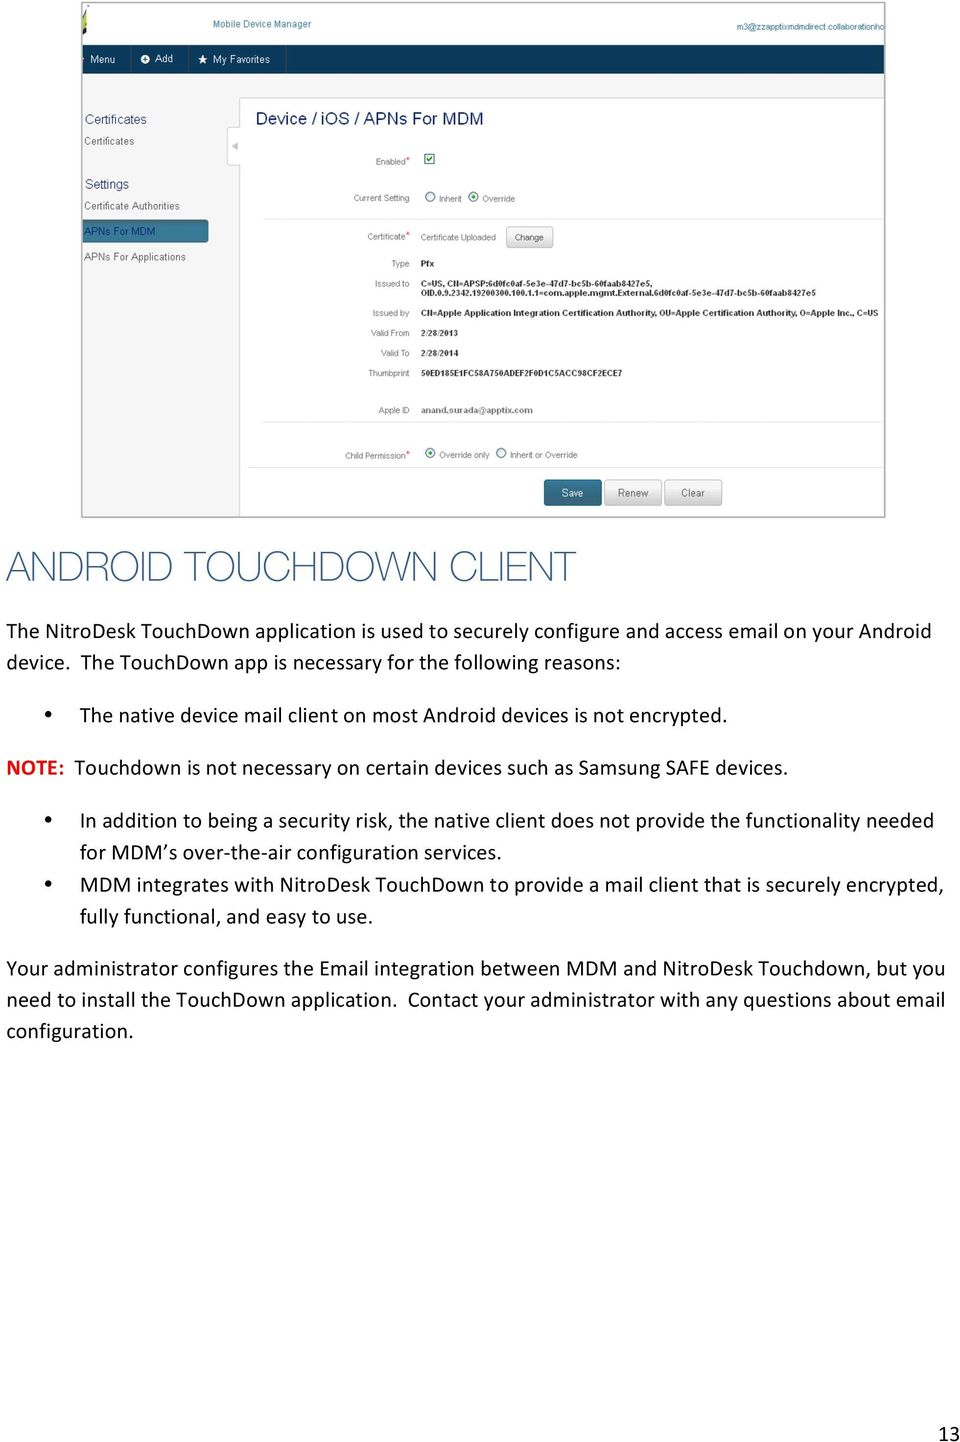 NOTE: Touchdown is not necessary on certain devices such as Samsung SAFE devices.